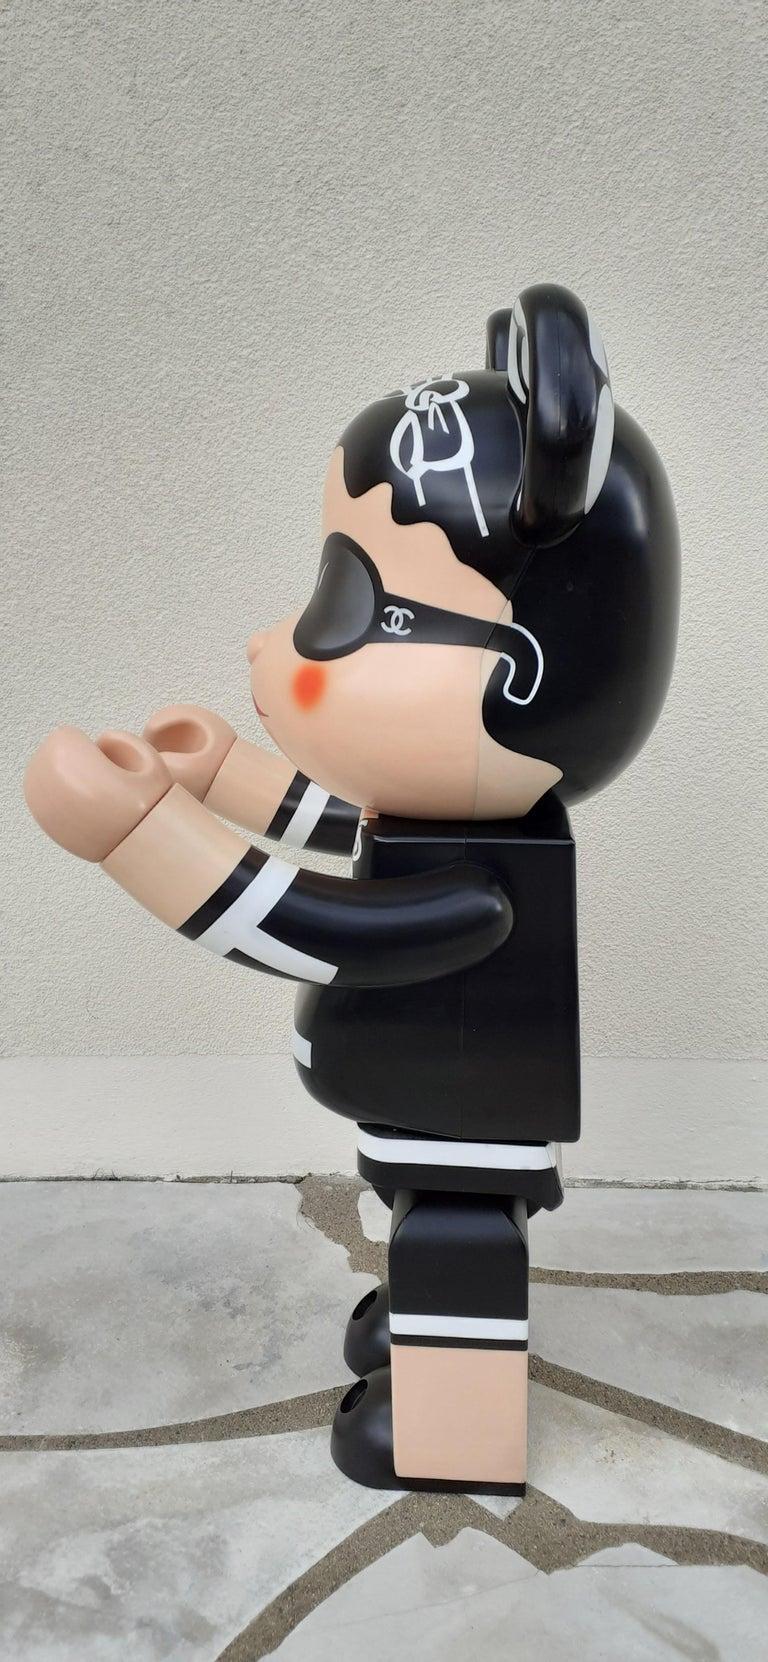 Black Chanel 1000% Bearbrick Medicom Limited Edition Rare Collector For Sale